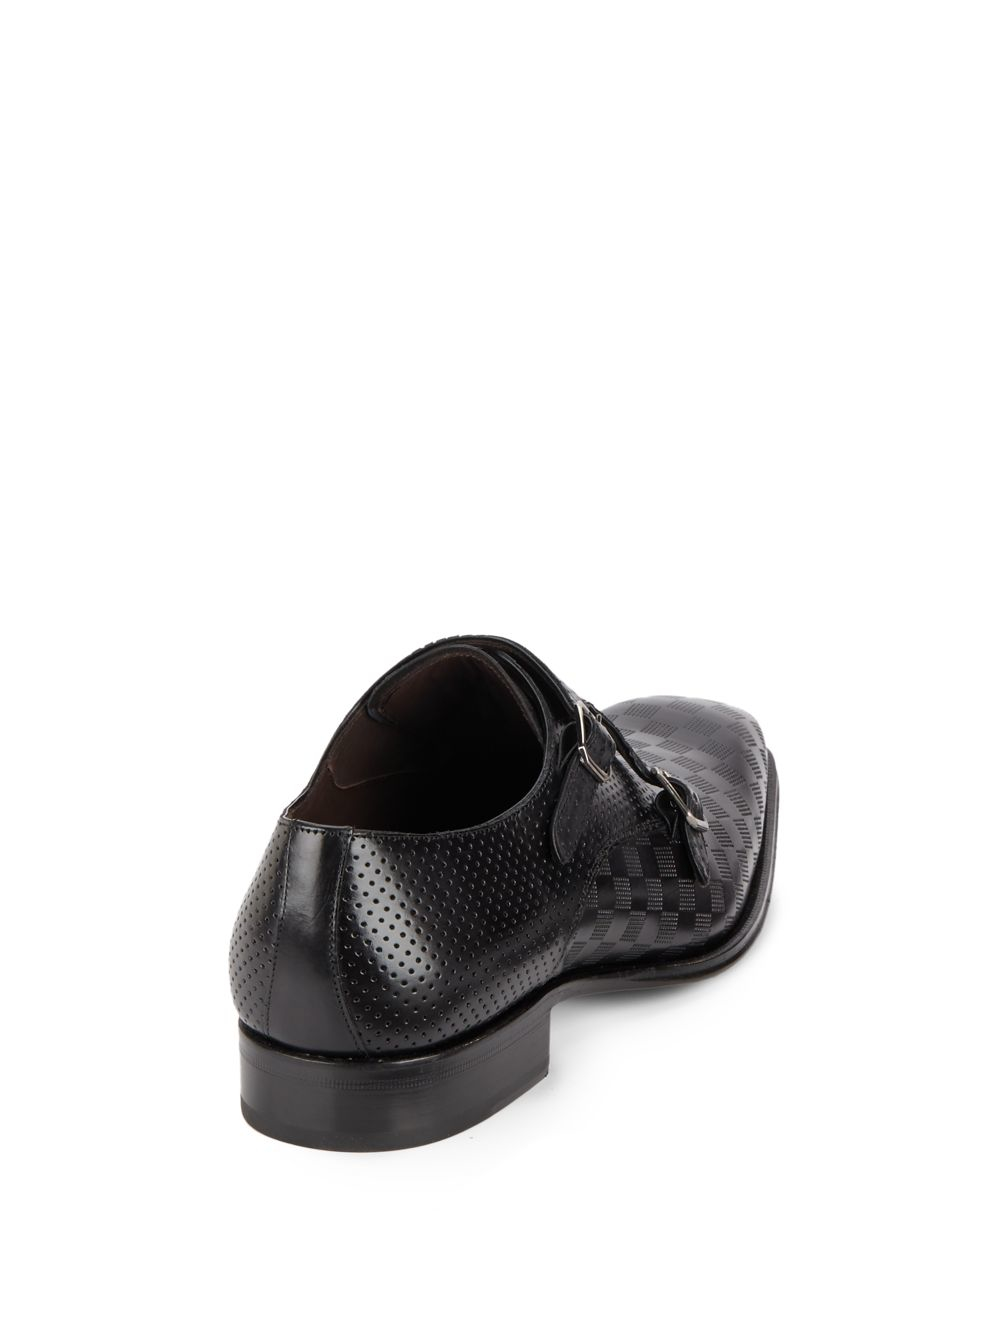 Saks Tommy Perforated Leather Derby Shoes